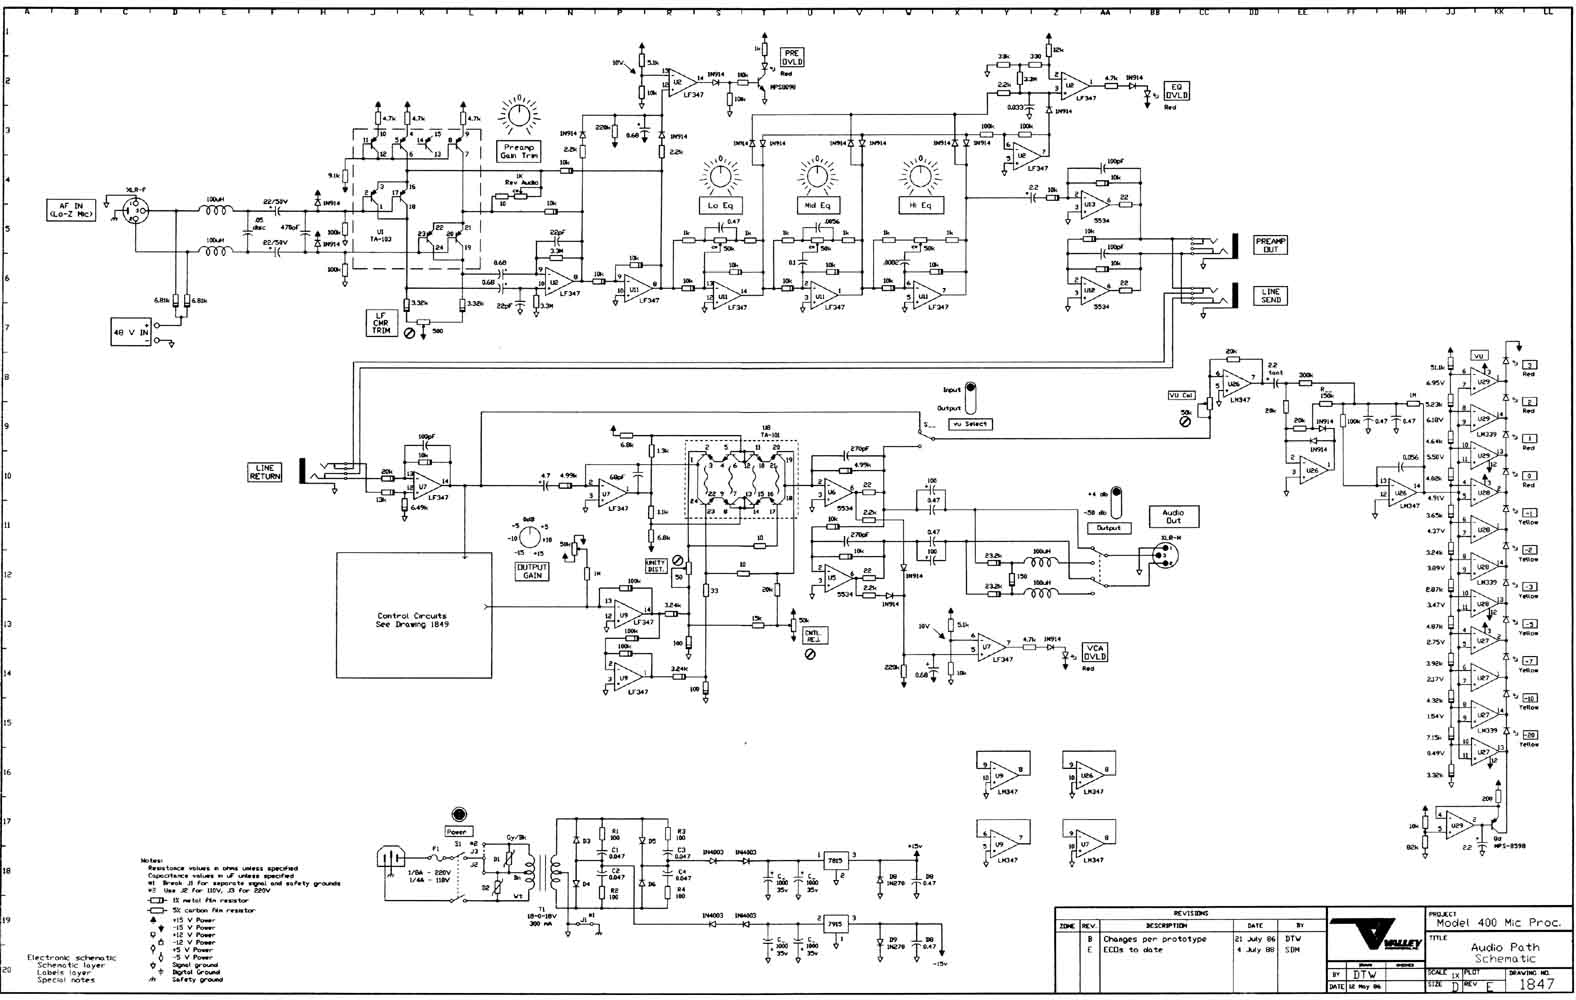 valley 400 mic processor schematic A5 Processor Schematic